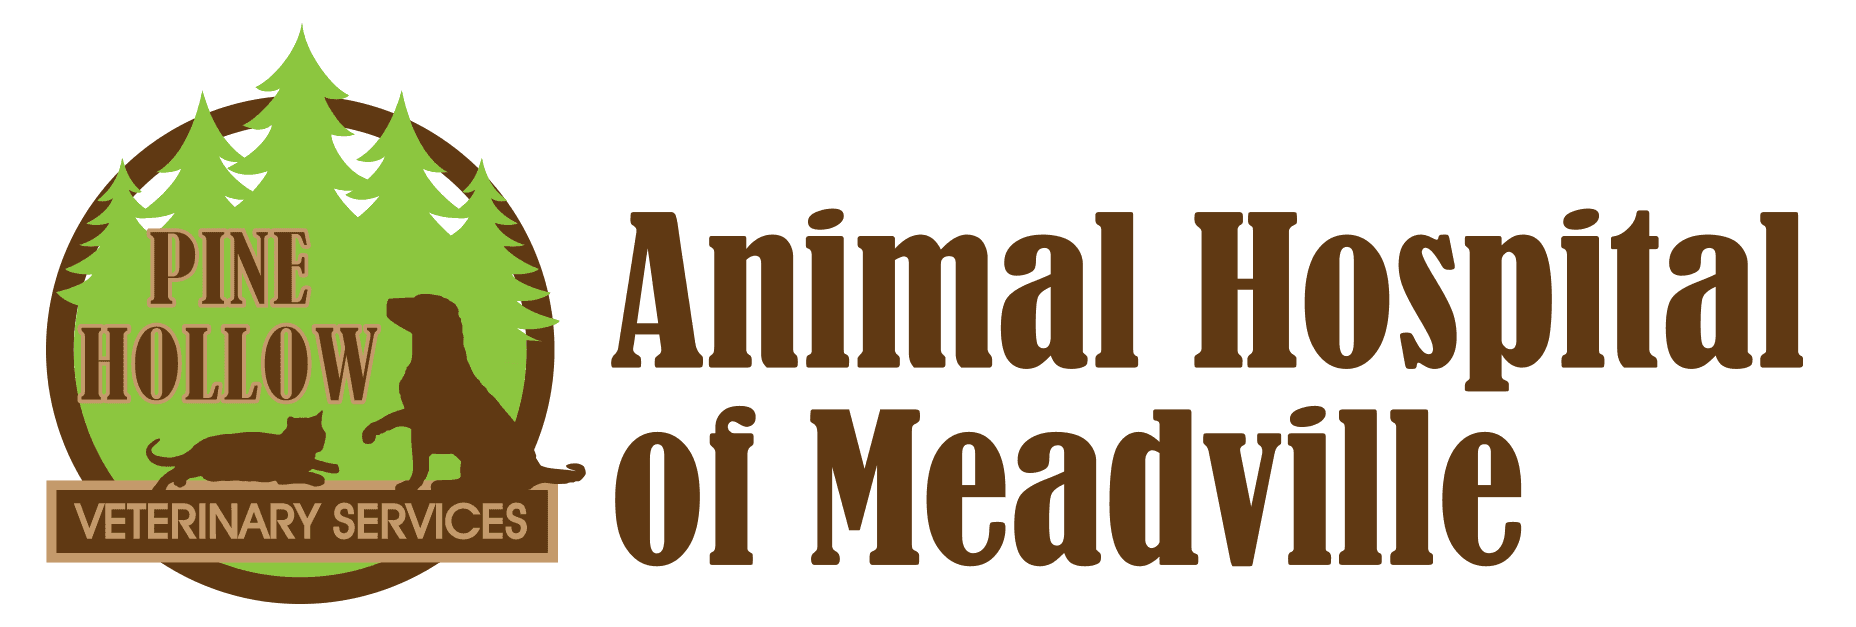 Pine Hollow Veterinary Services northwest PA & northeast OH